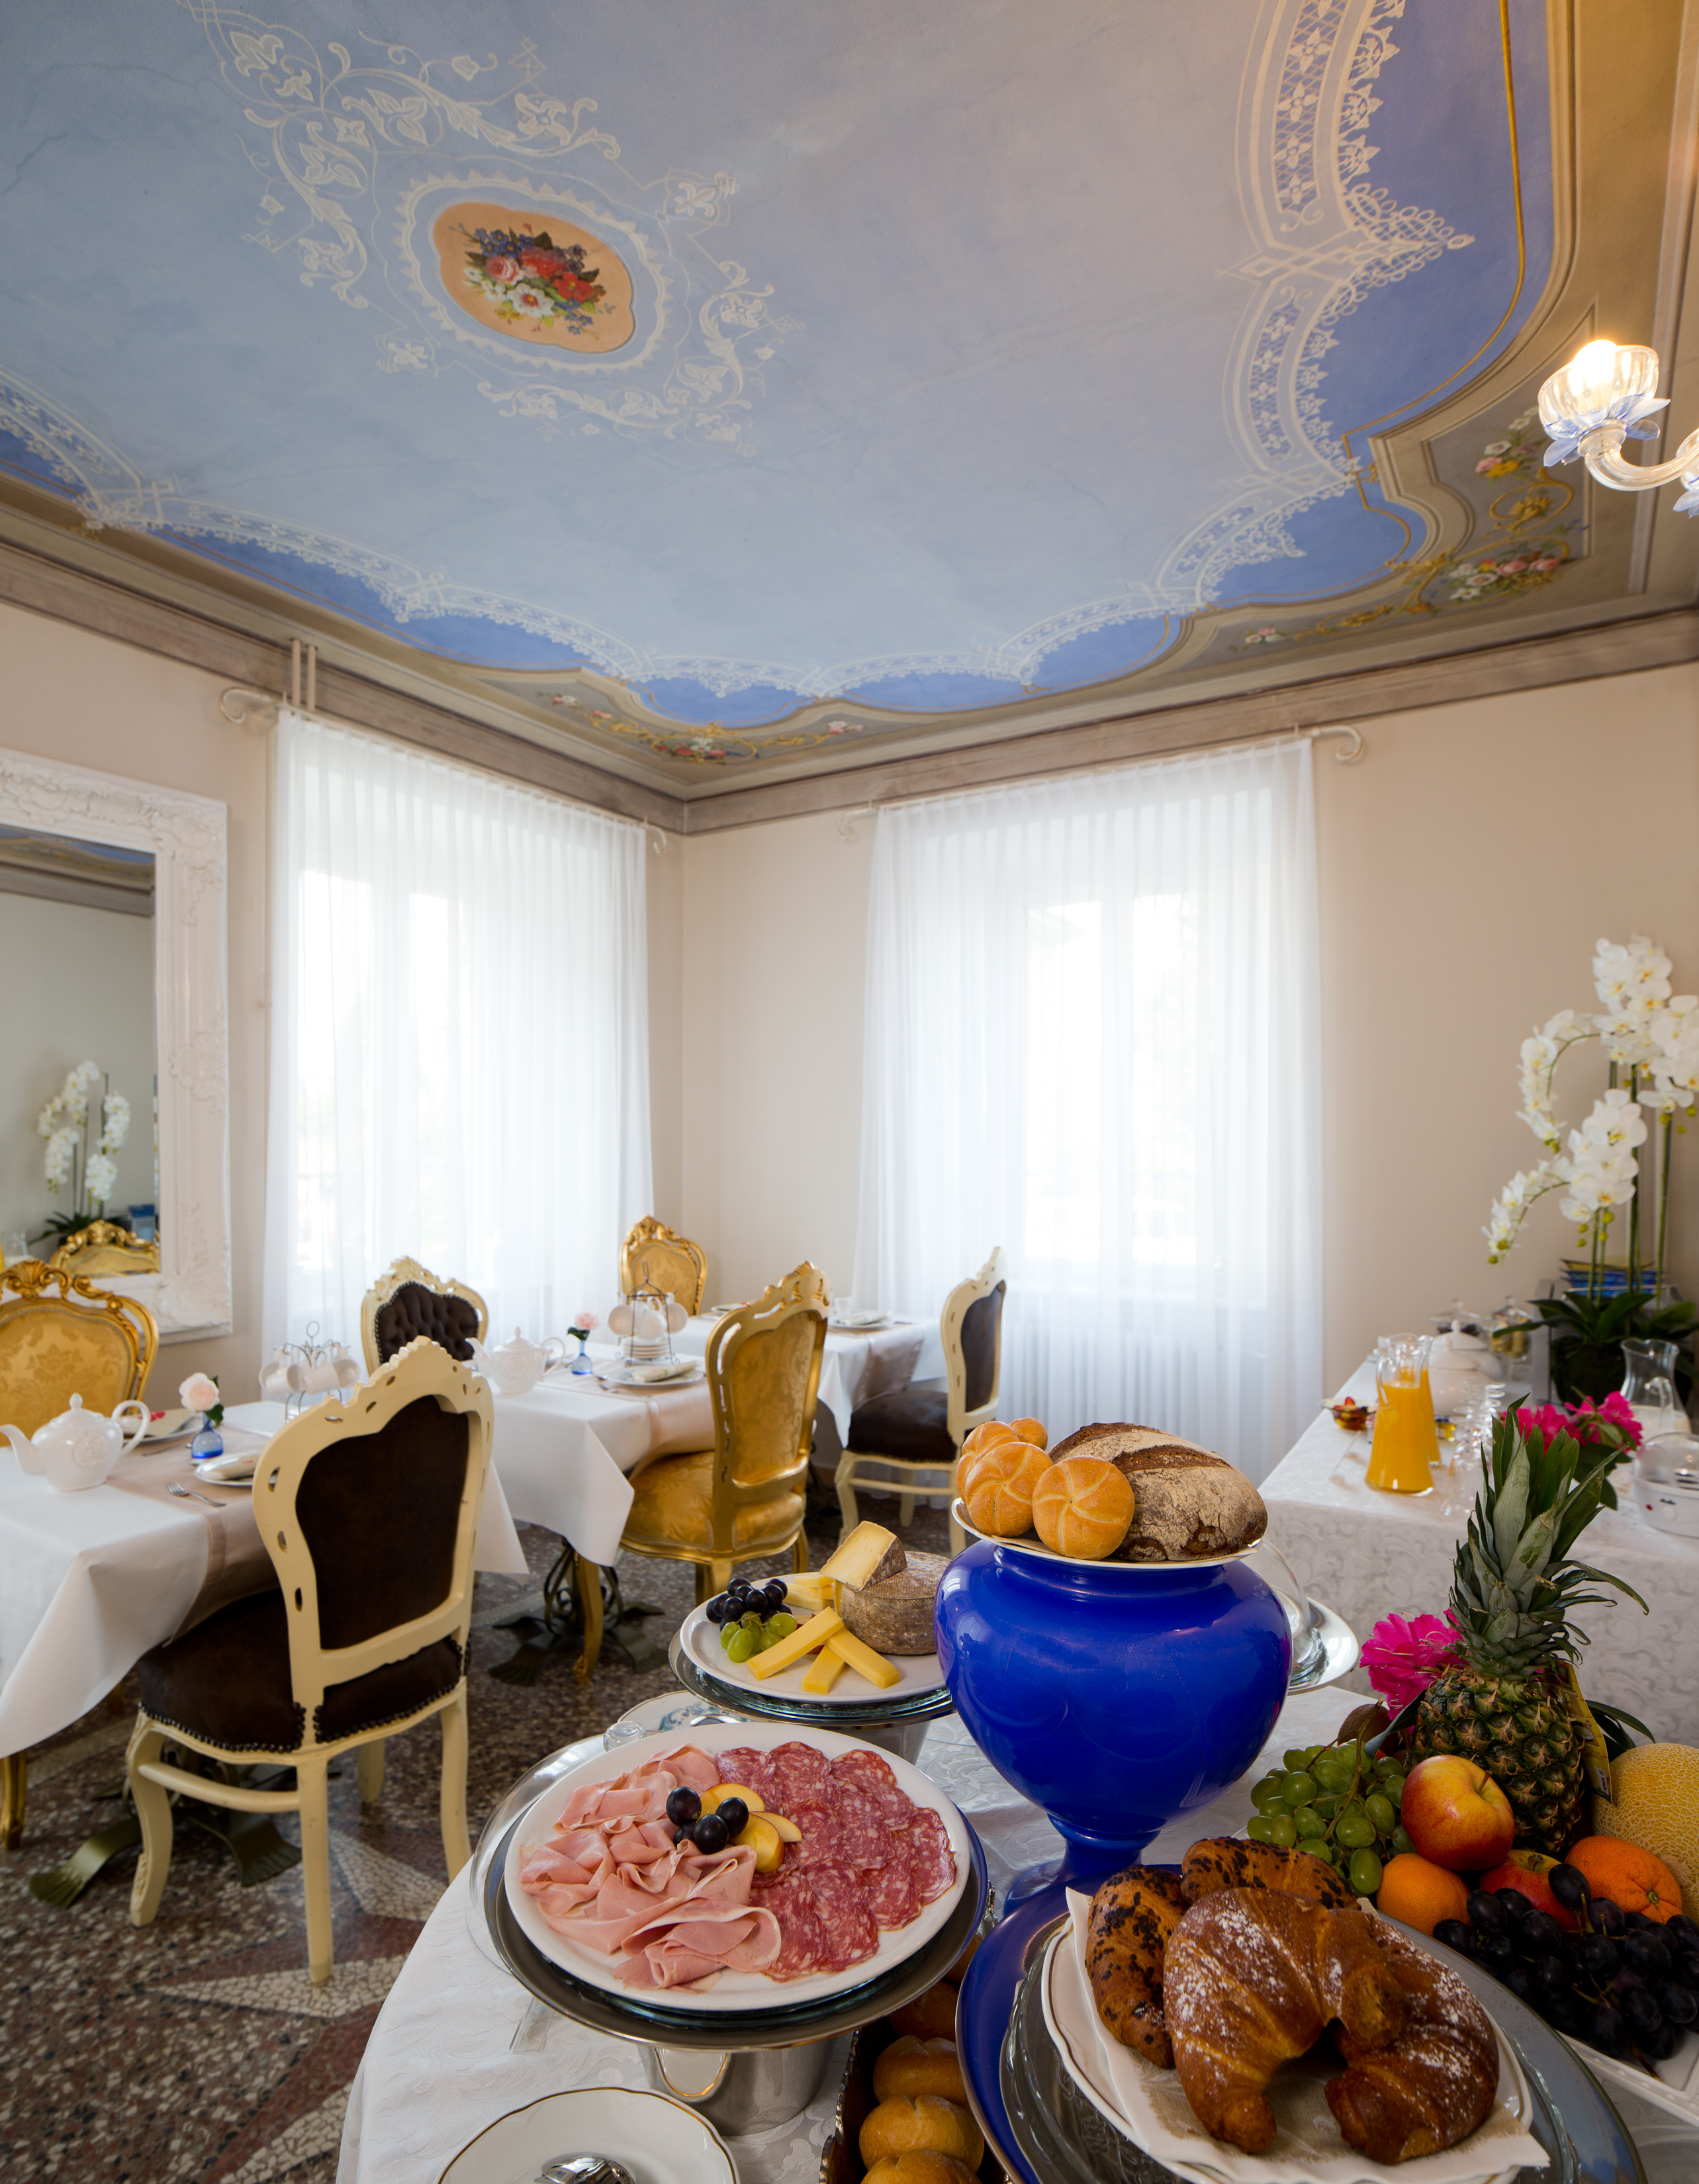 Albergo Villa Sarnia - rooms lookup 14